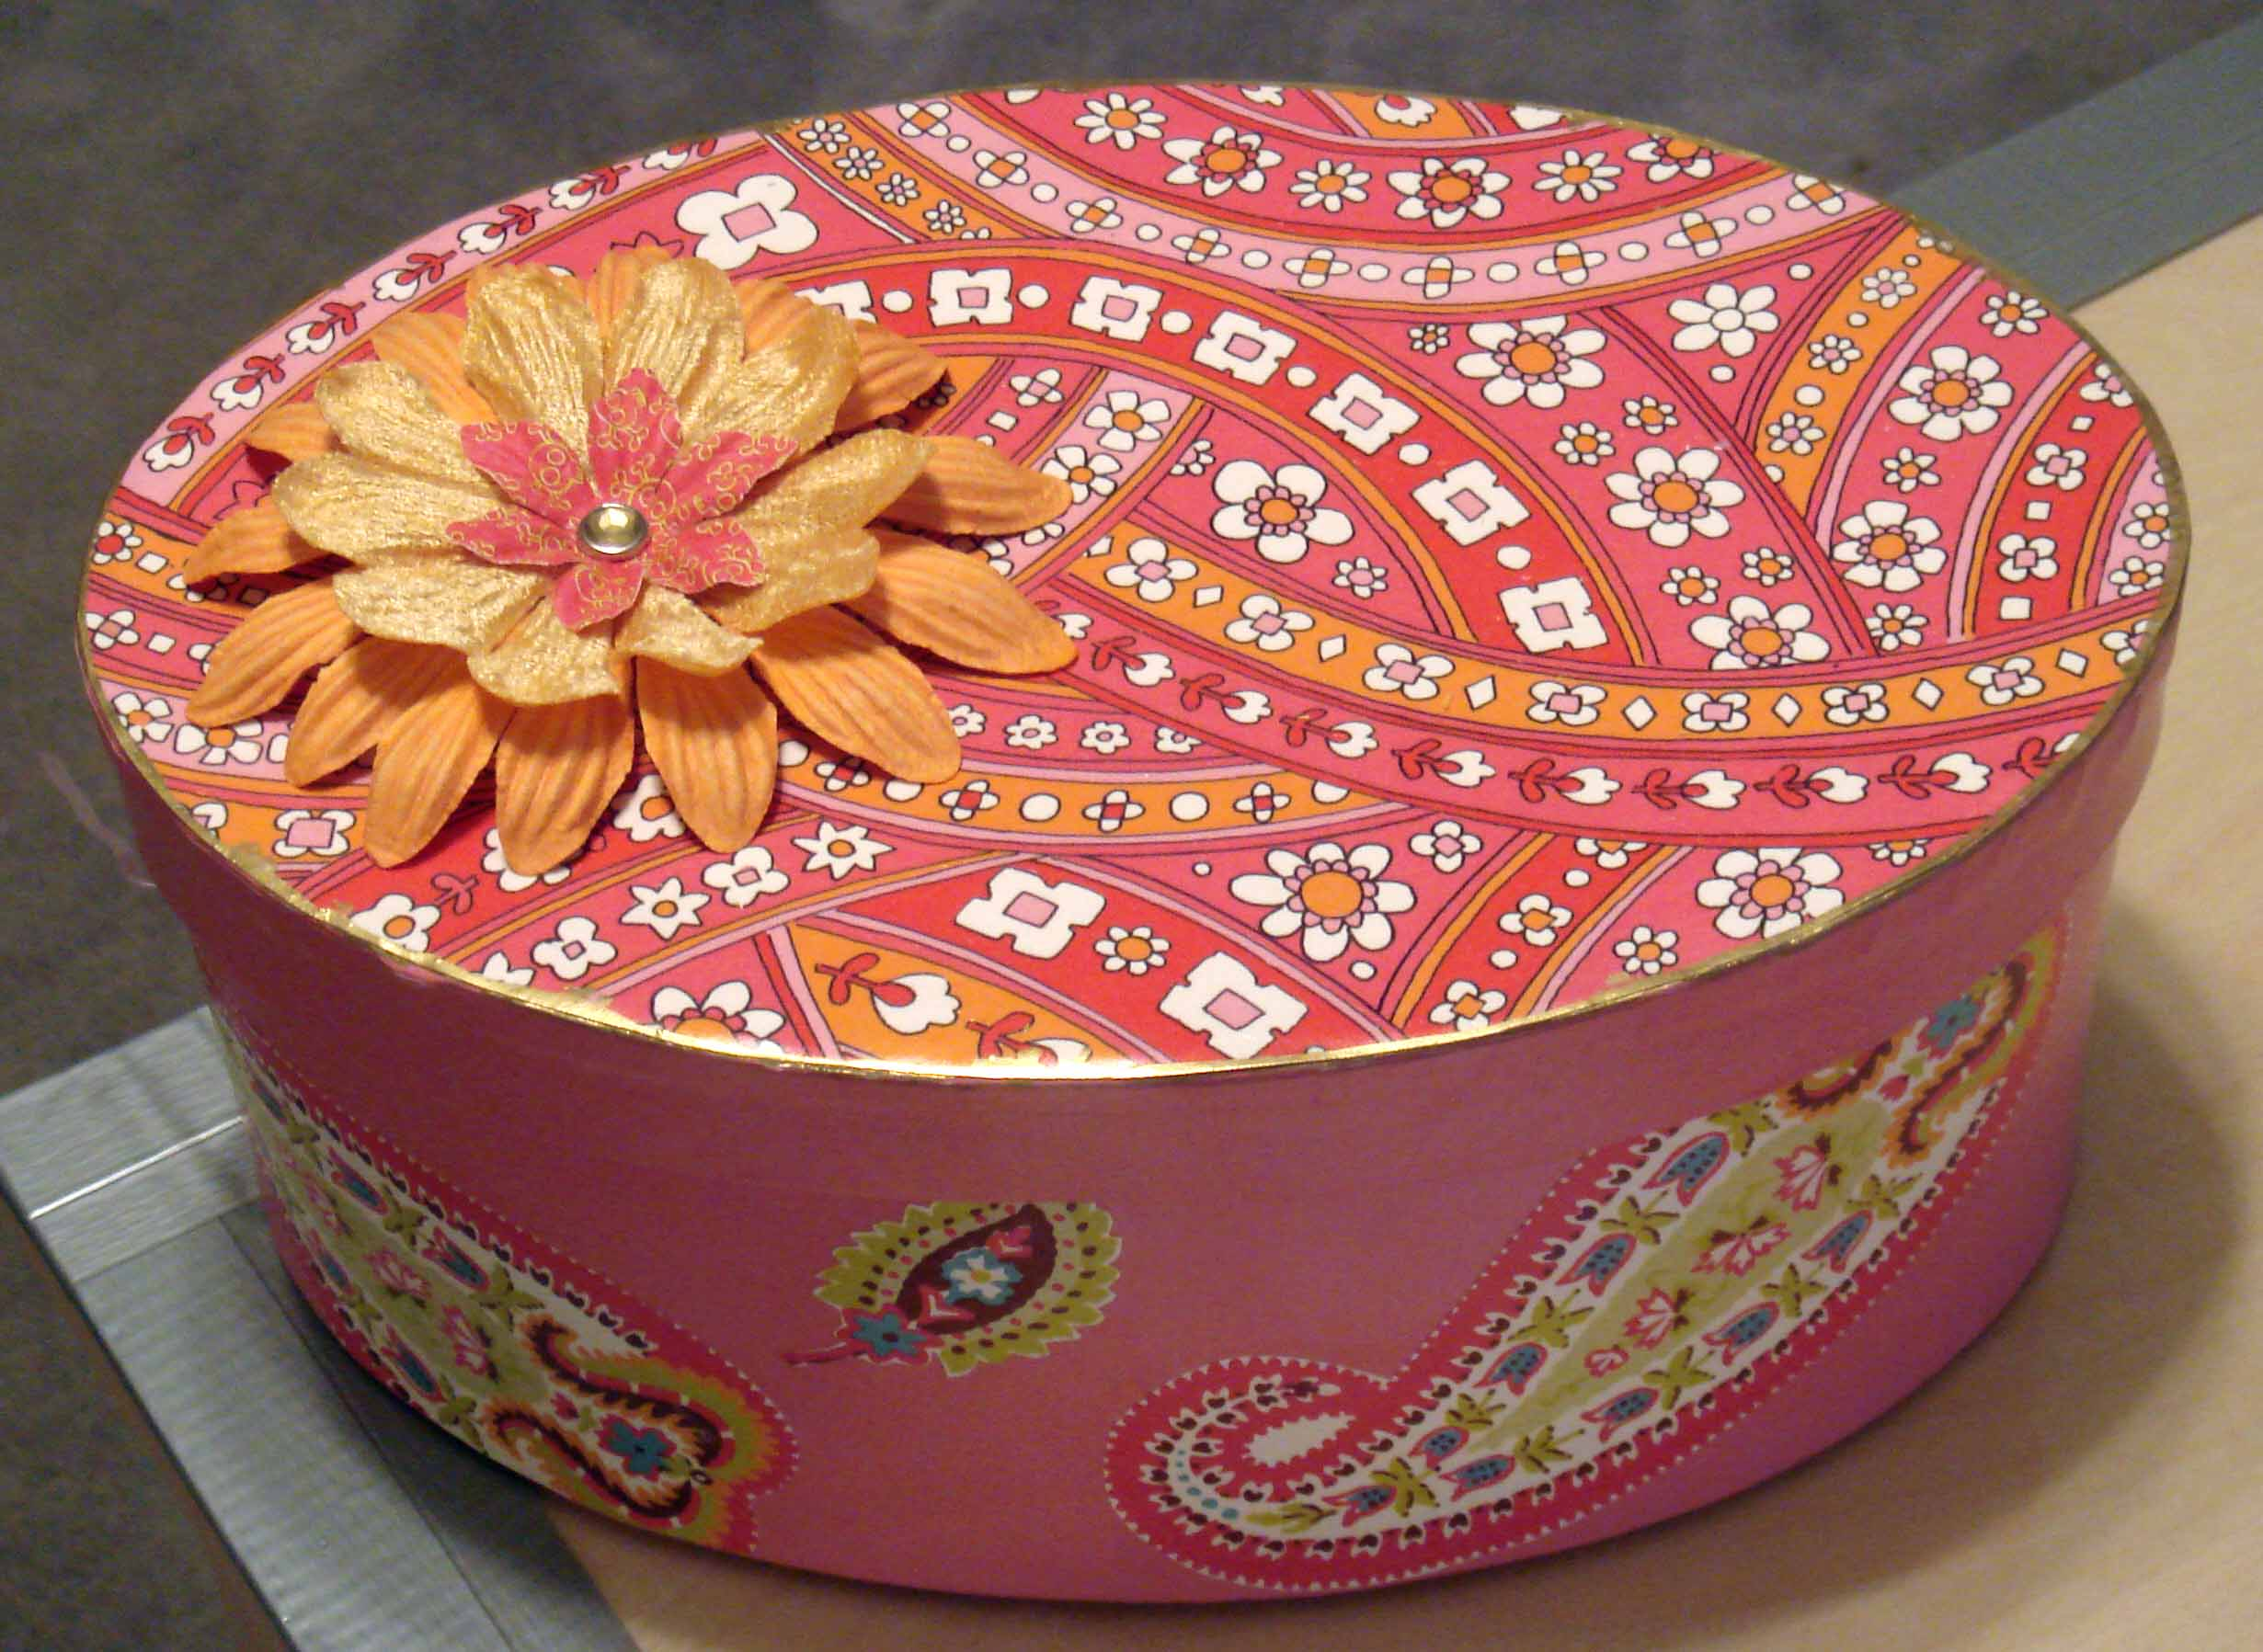 pink oval box top view